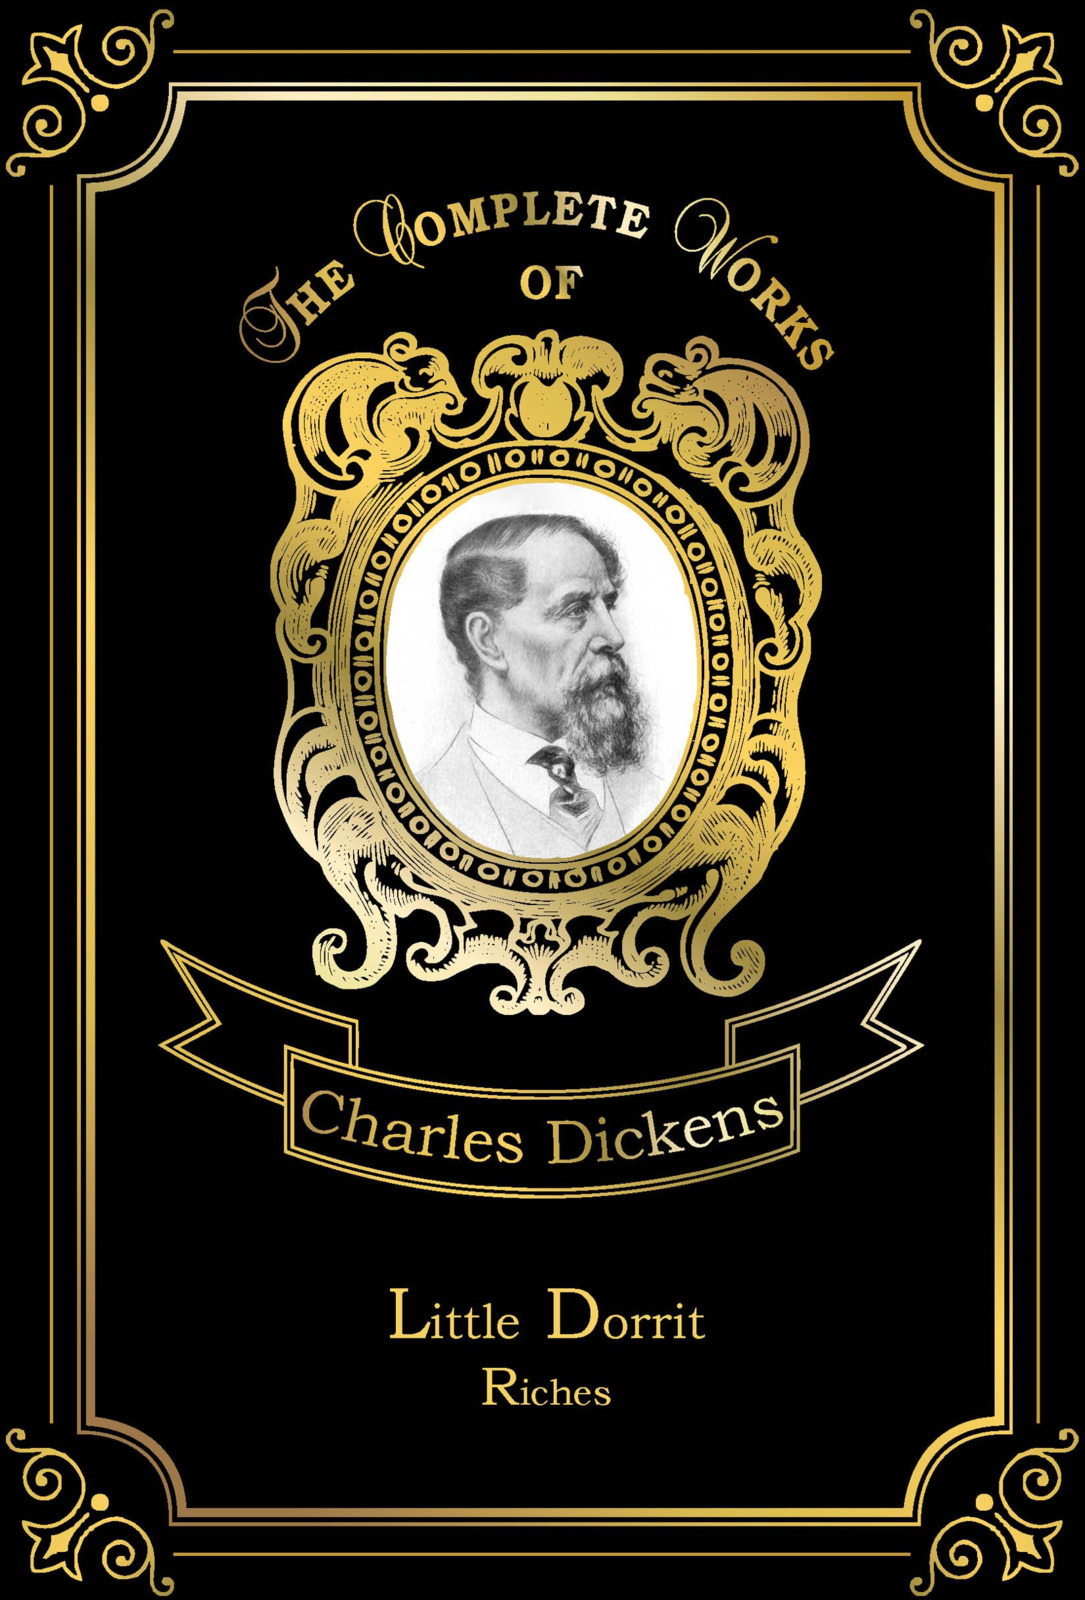 Charles Dickens Little Dorrit: Riches dickens c little dorrit riches